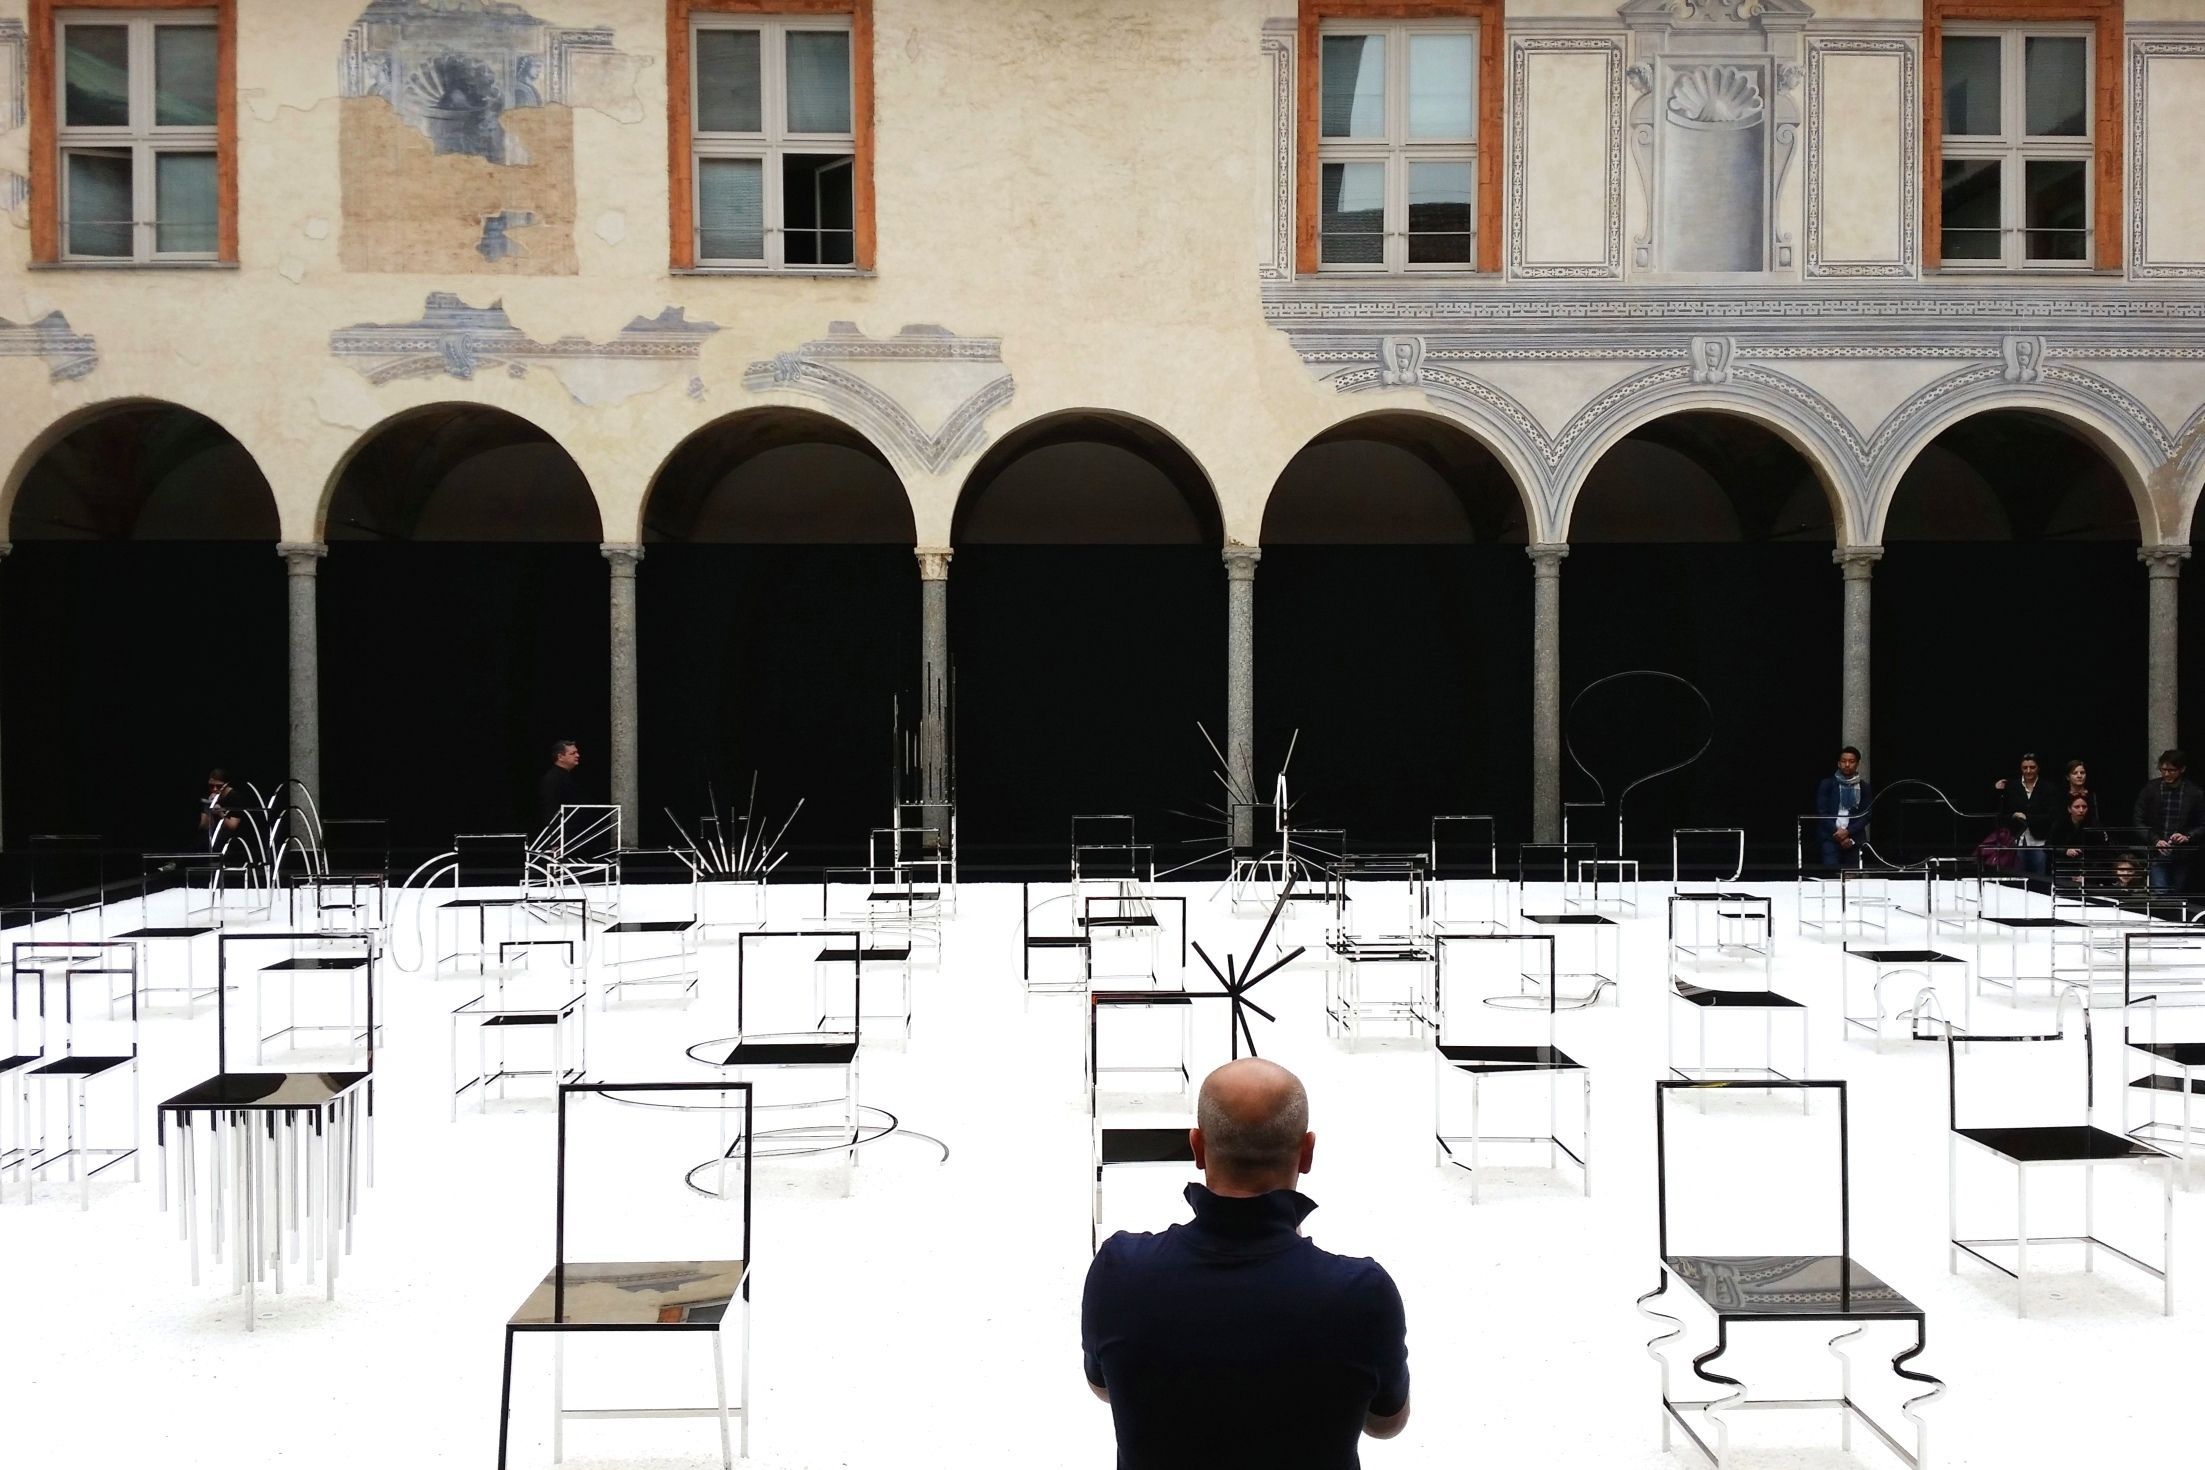 Salone del Mobile is the main event in Milan's Design Week